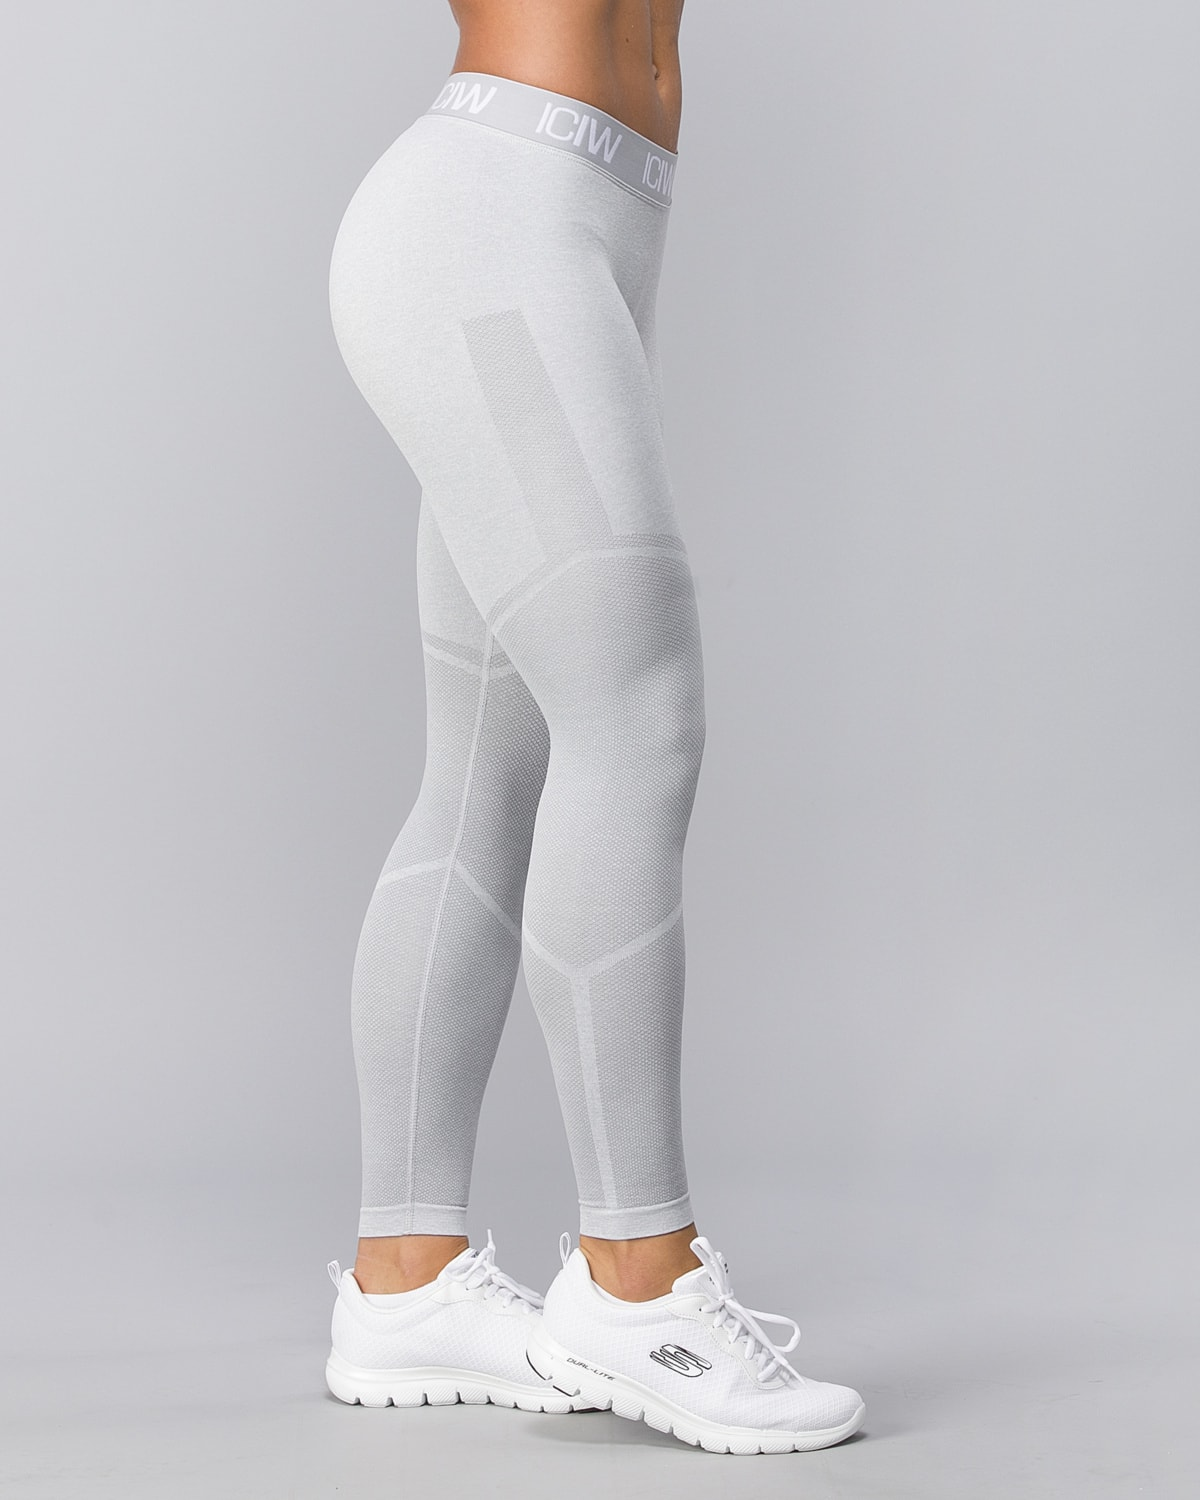 Icaniwill-Seamless Tights–Light Grey1